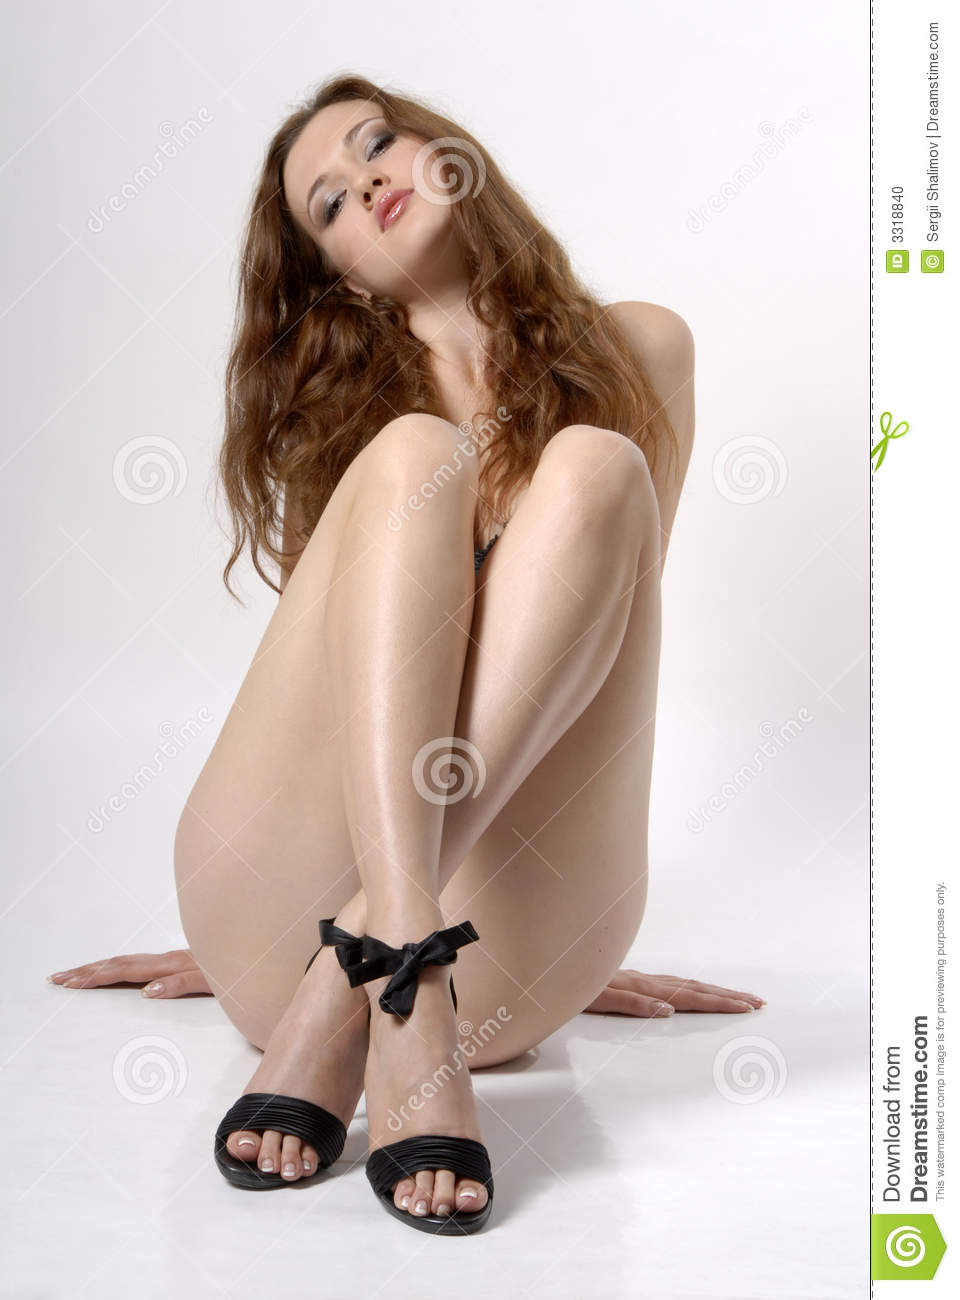 Join. Nude girls legs cross pic